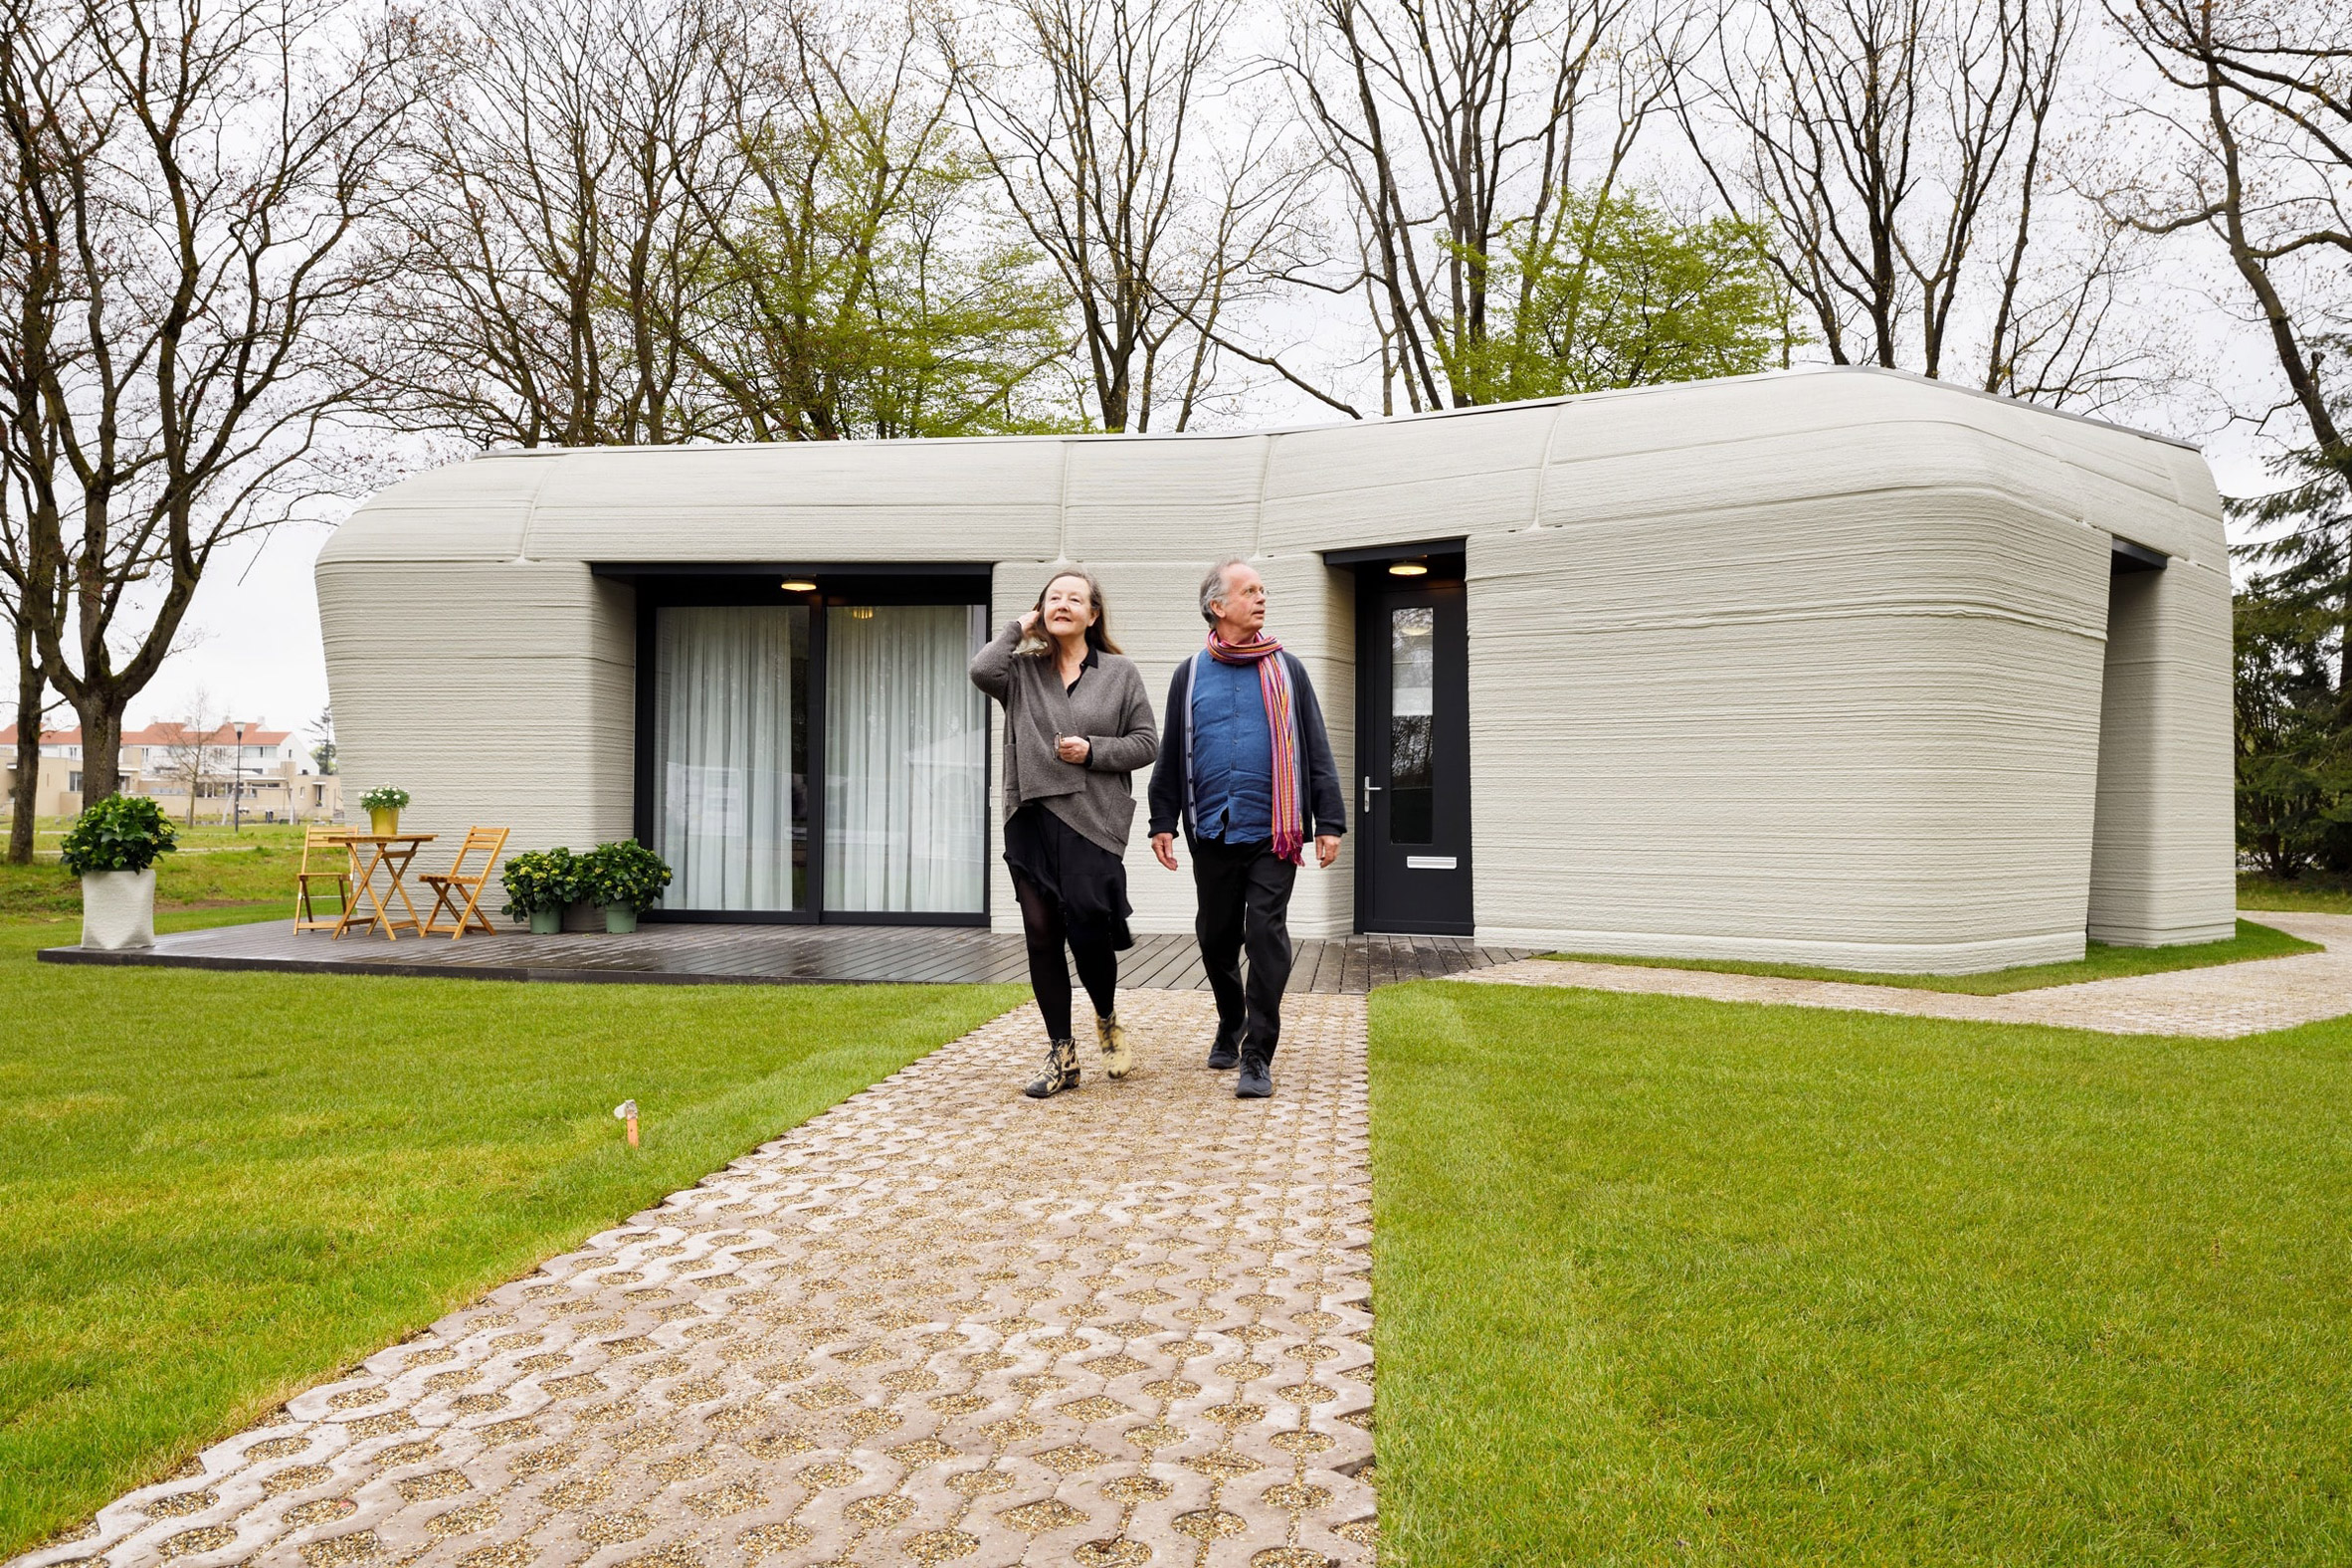 The 3D-printed home forms part of a housing scheme named Project Milestone